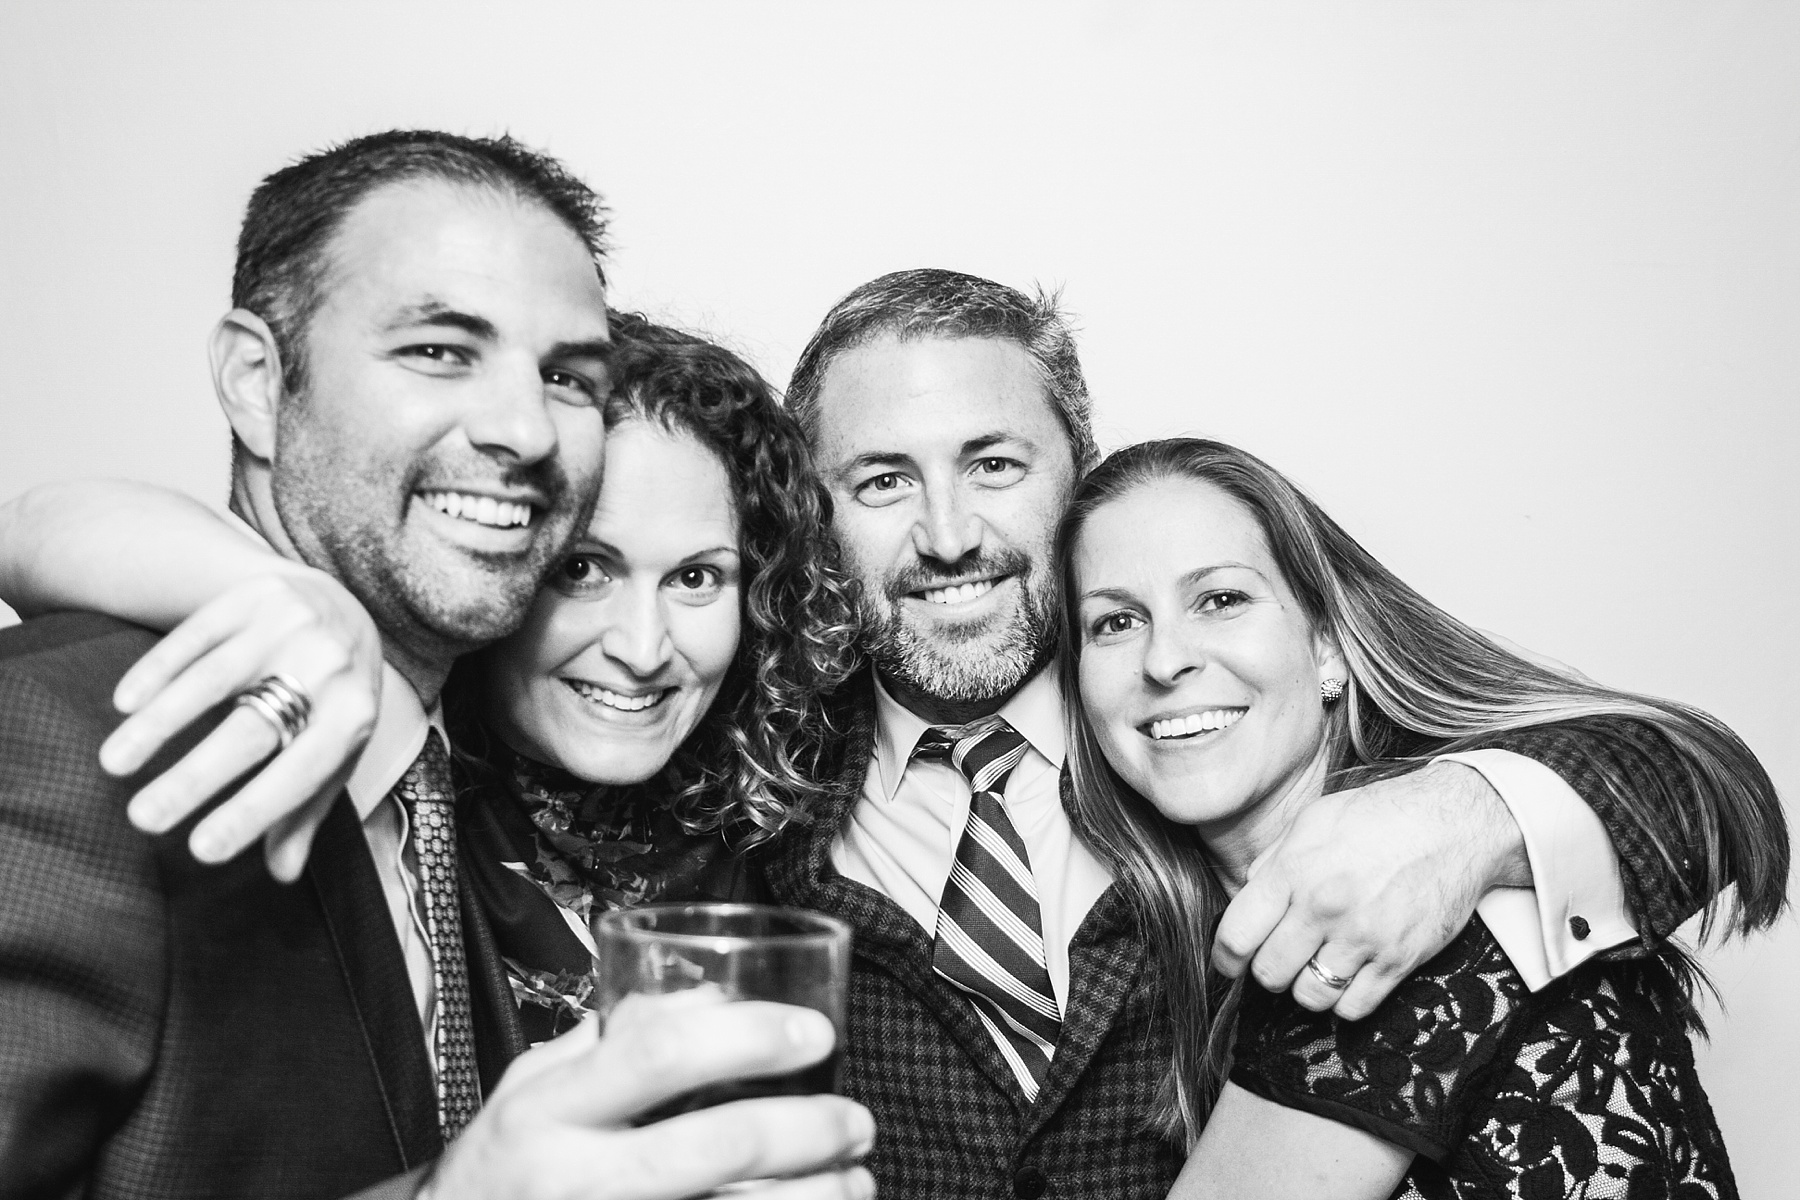 Black and White Wedding Guest Portraits 007.jpg